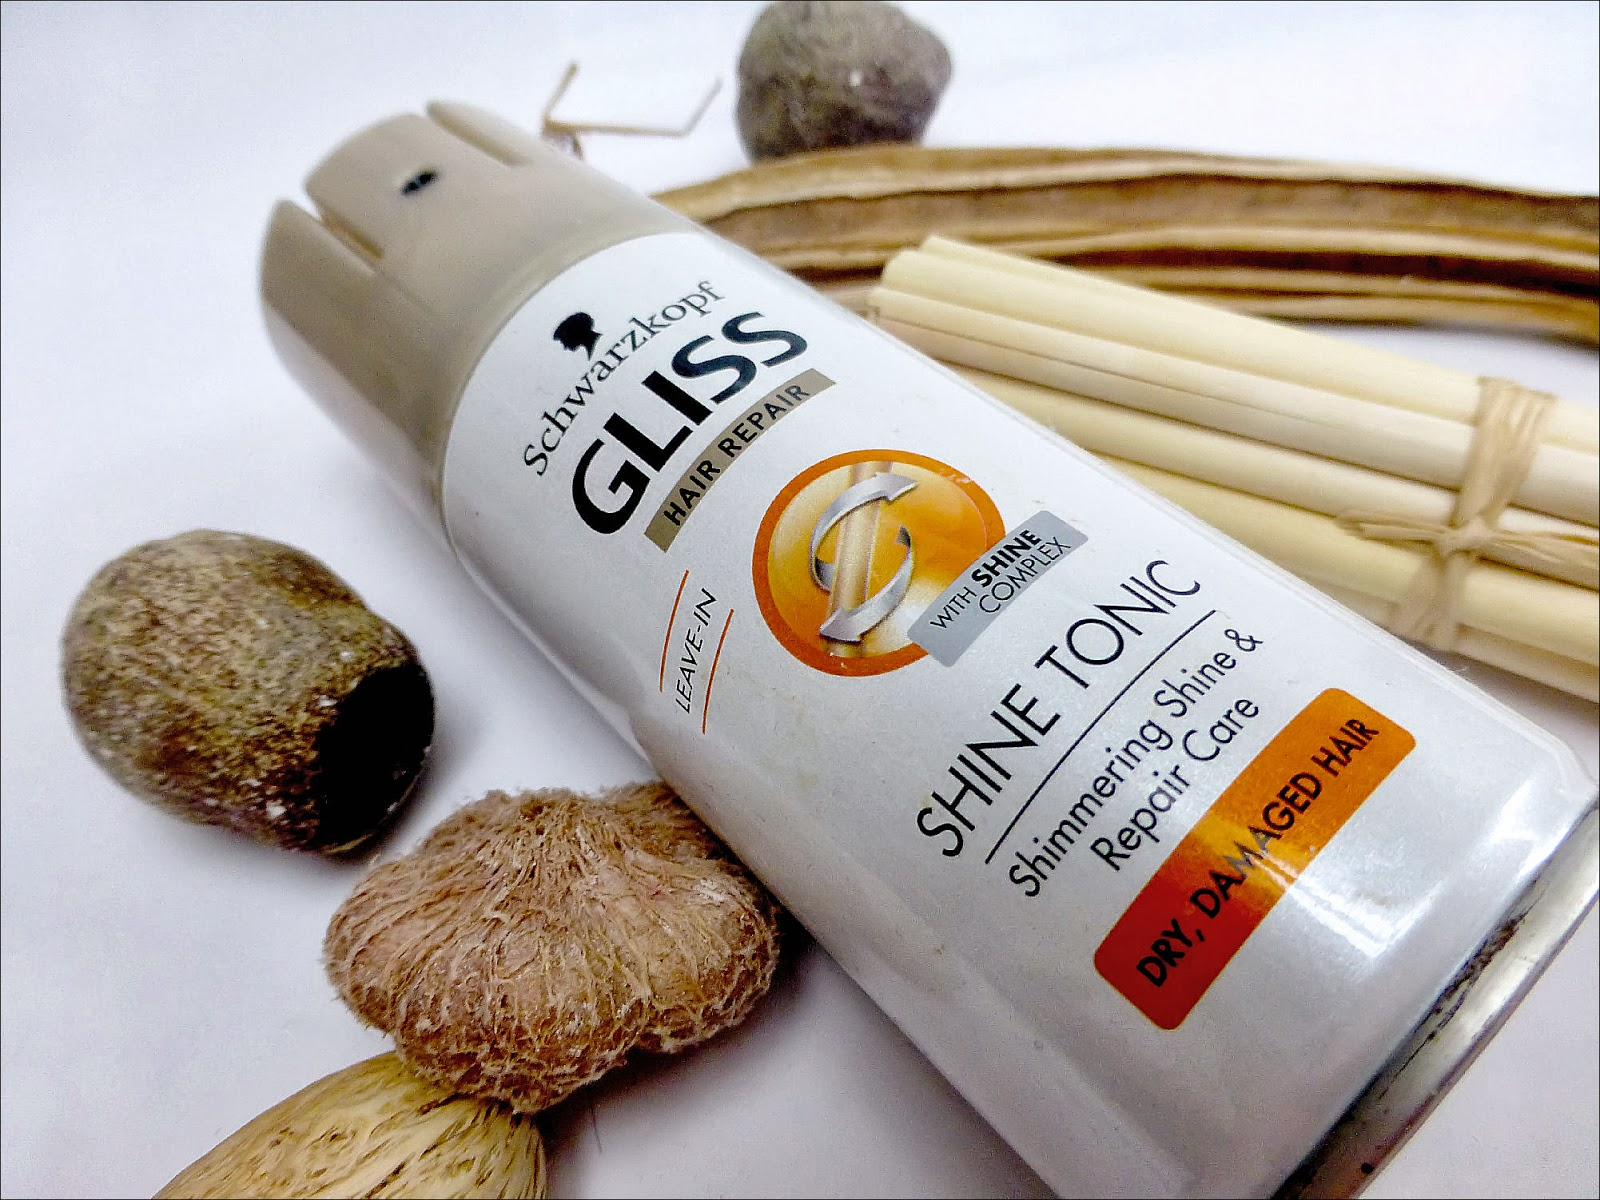 Schwarzkopf Gliss Hair Repair Shine Tonic